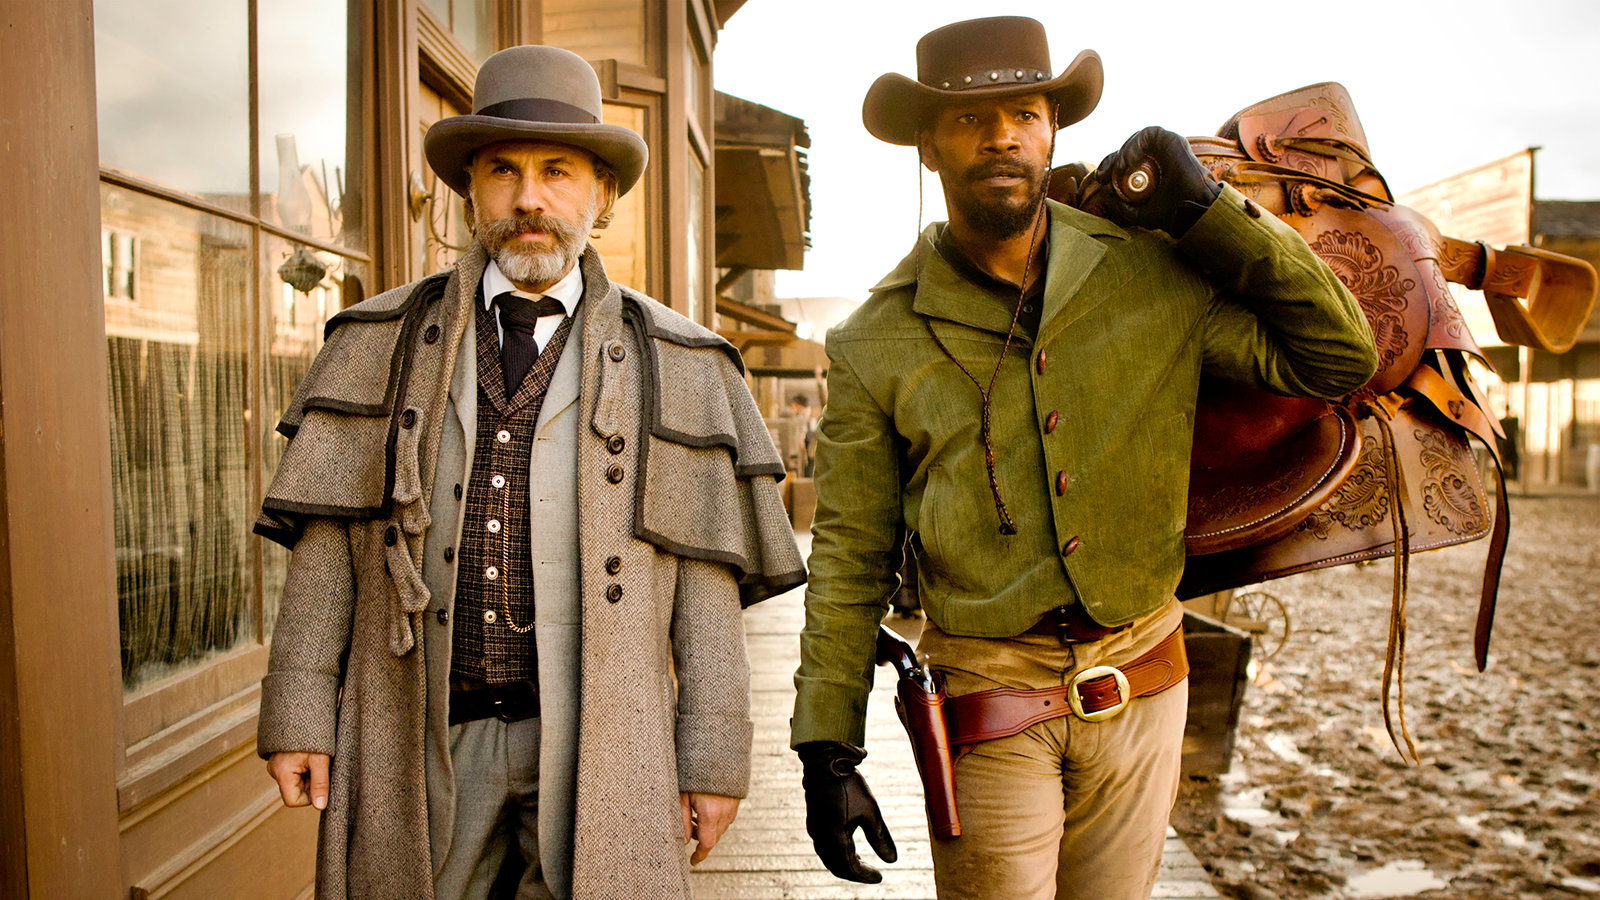 django unchained Quentin Tarantinos 50 Greatest Quotes